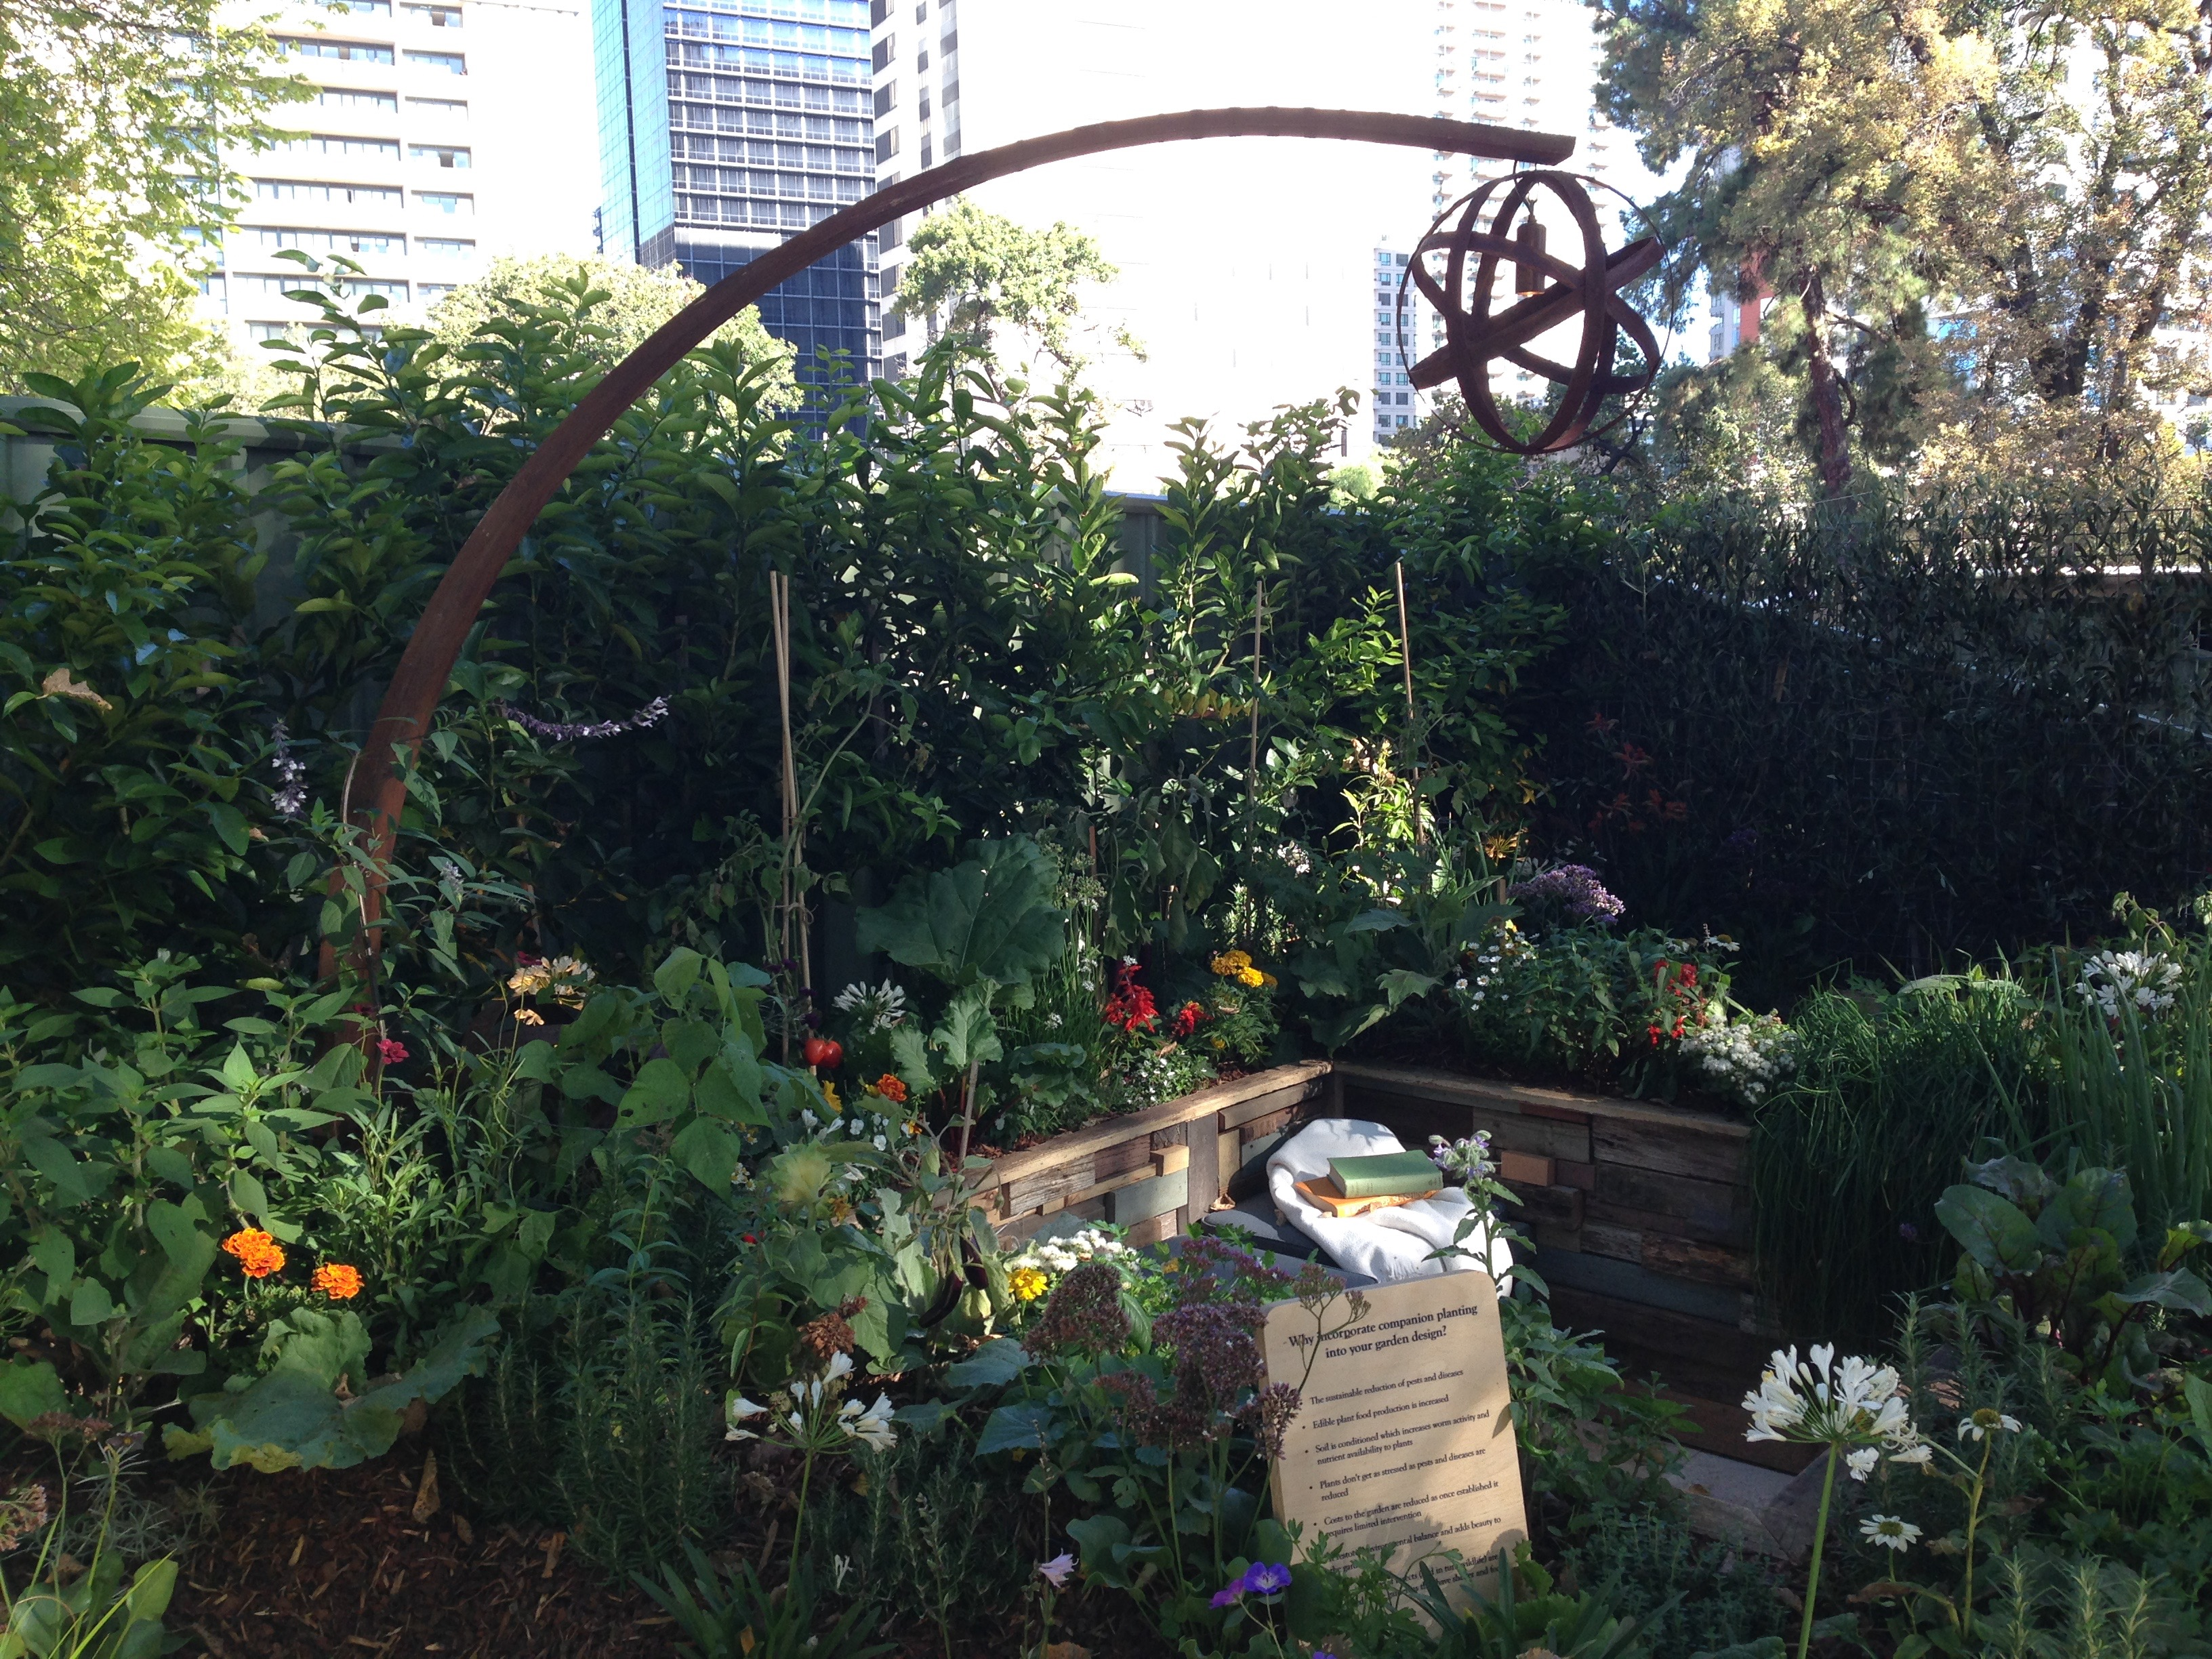 urban oasis achievable garden by veronica bosque janna schreier - Garden Design Trends 2015